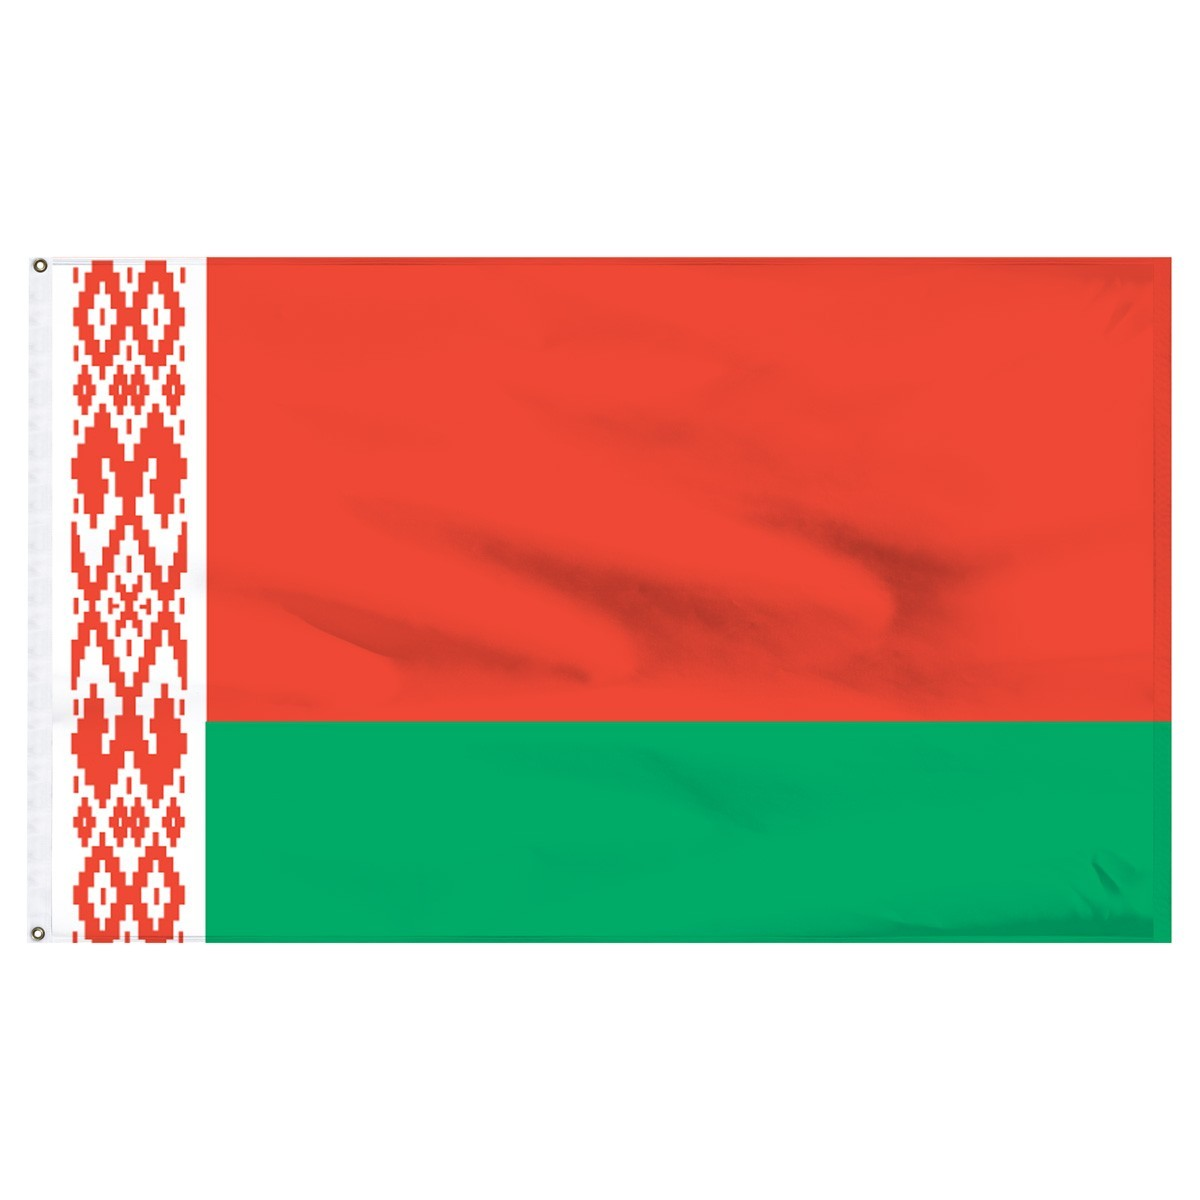 Belarus 4' x 6' Outdoor Nylon Country Flag